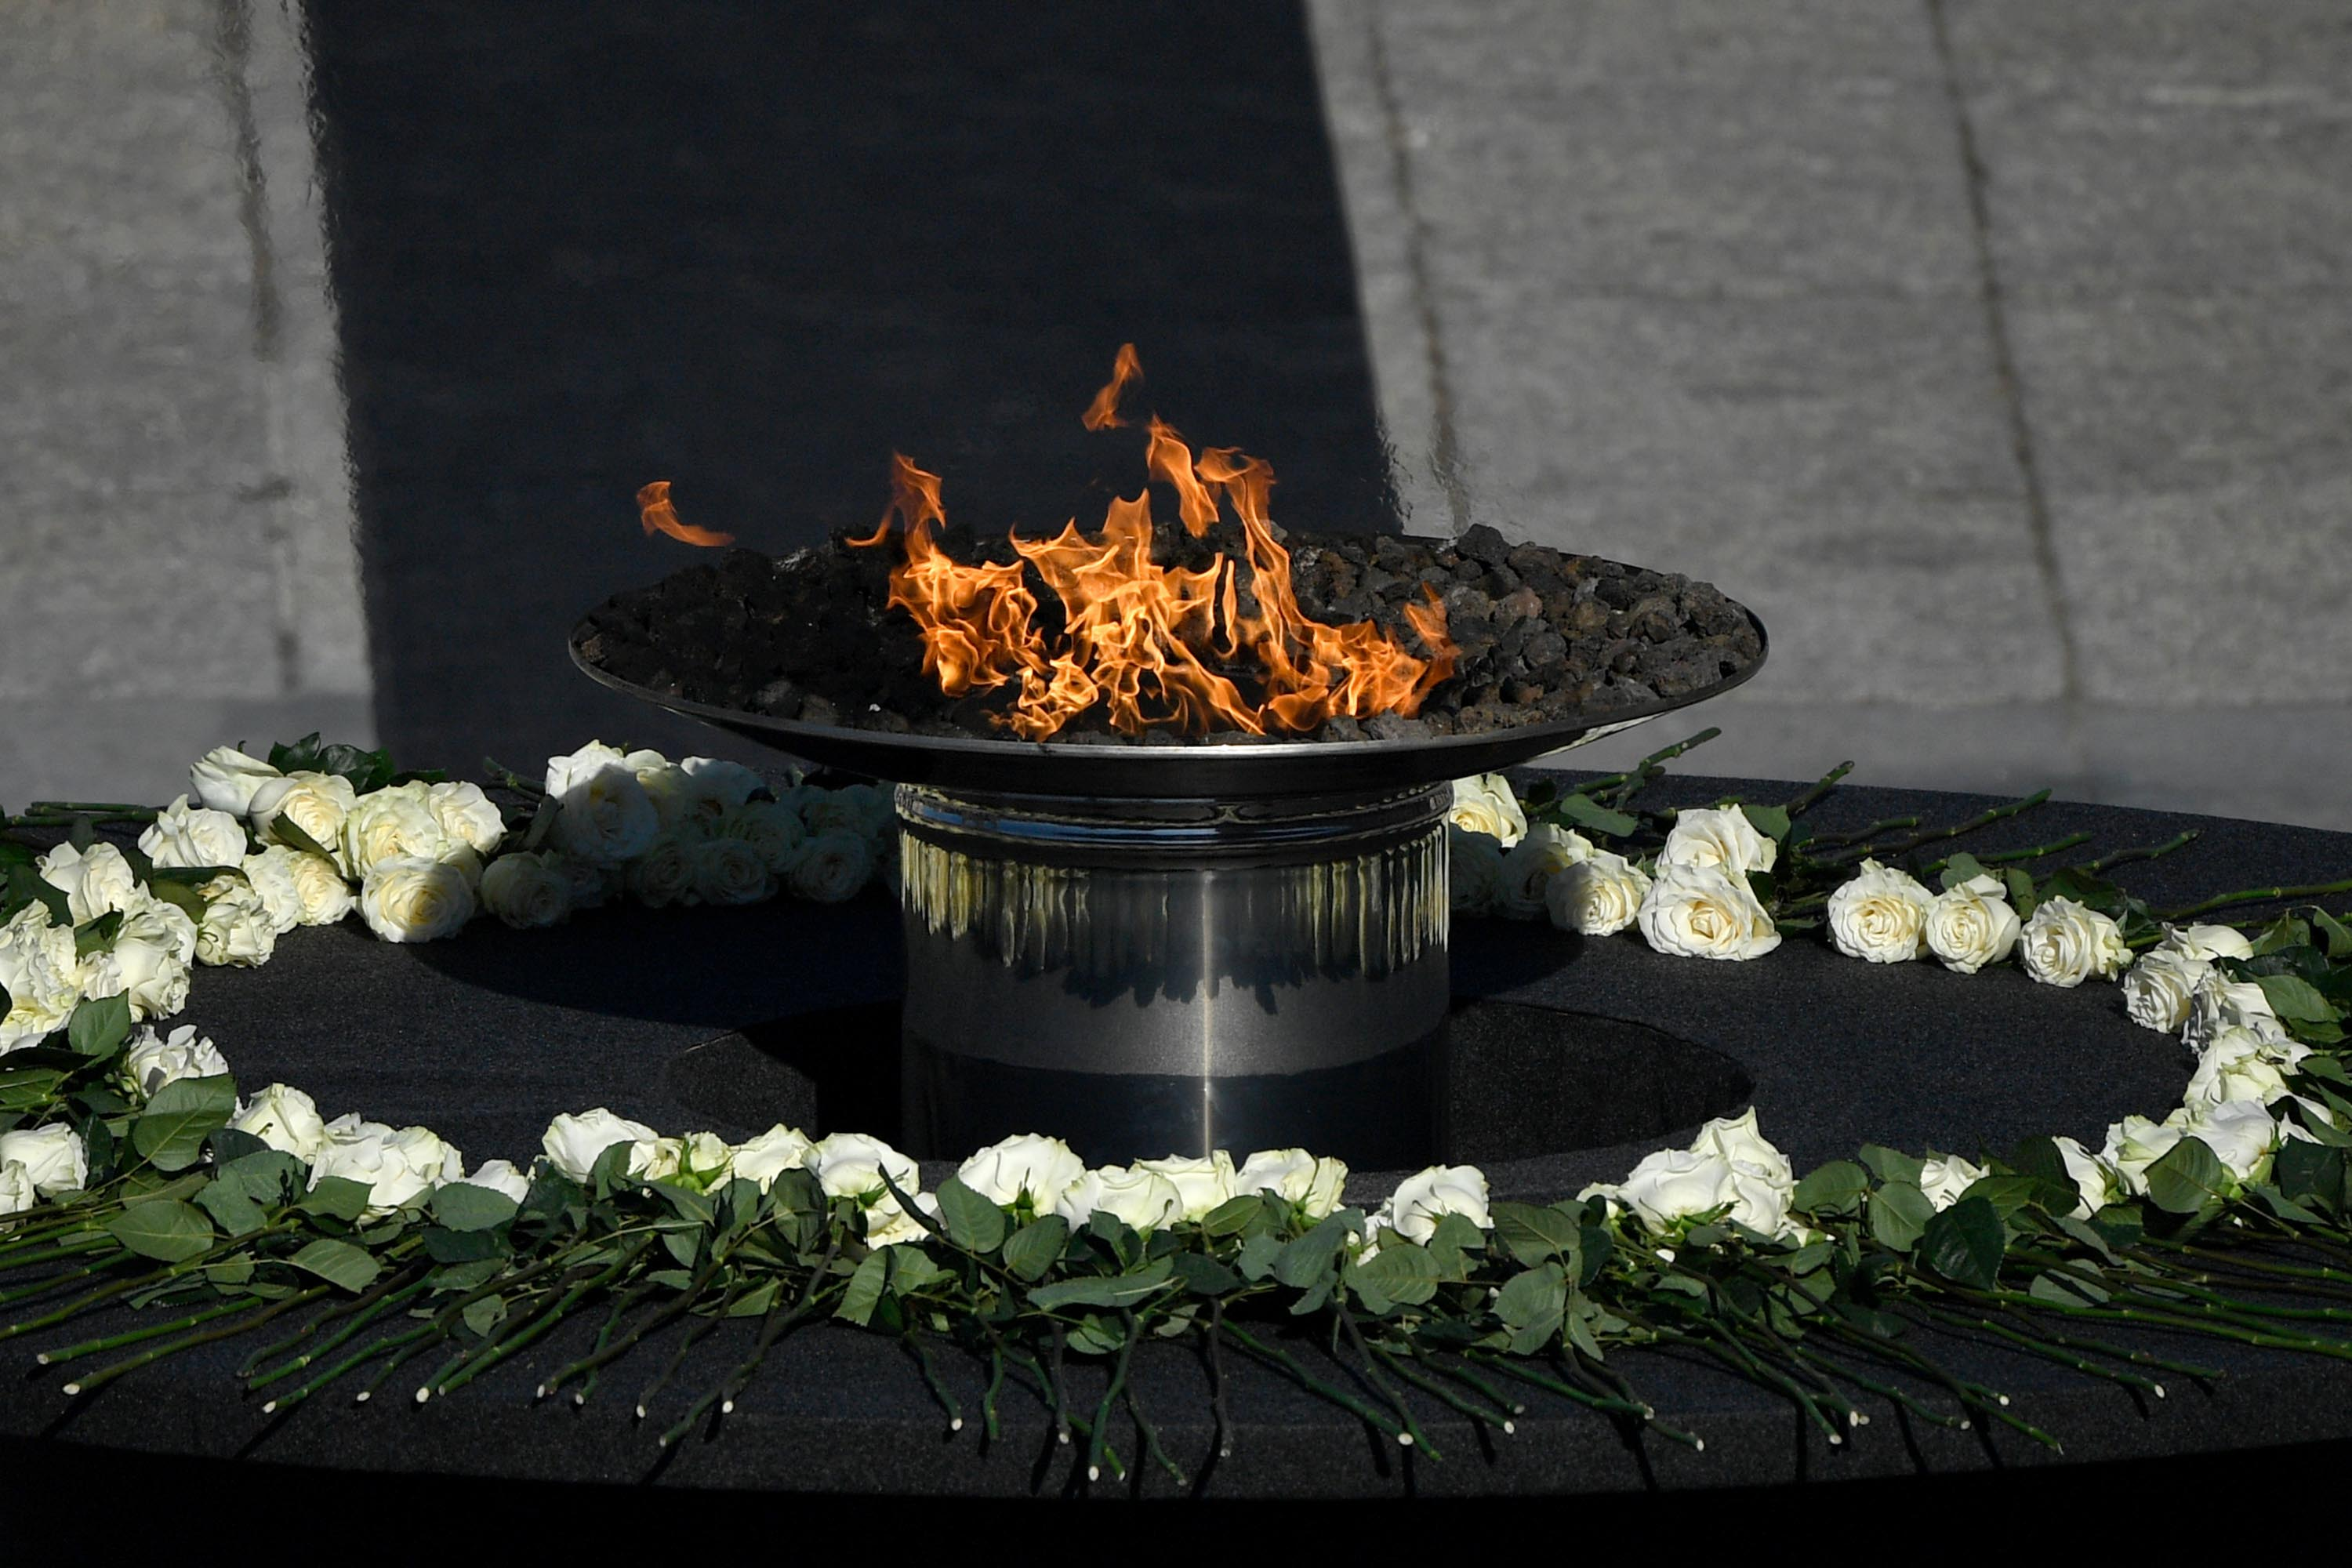 A flame burns on a cauldron surrounded by white roses during a state ceremony to honor Spanish victims of the coronavirus crisis, as well as public servants, at the Royal Palace in Madrid, on Thursday, July 16.